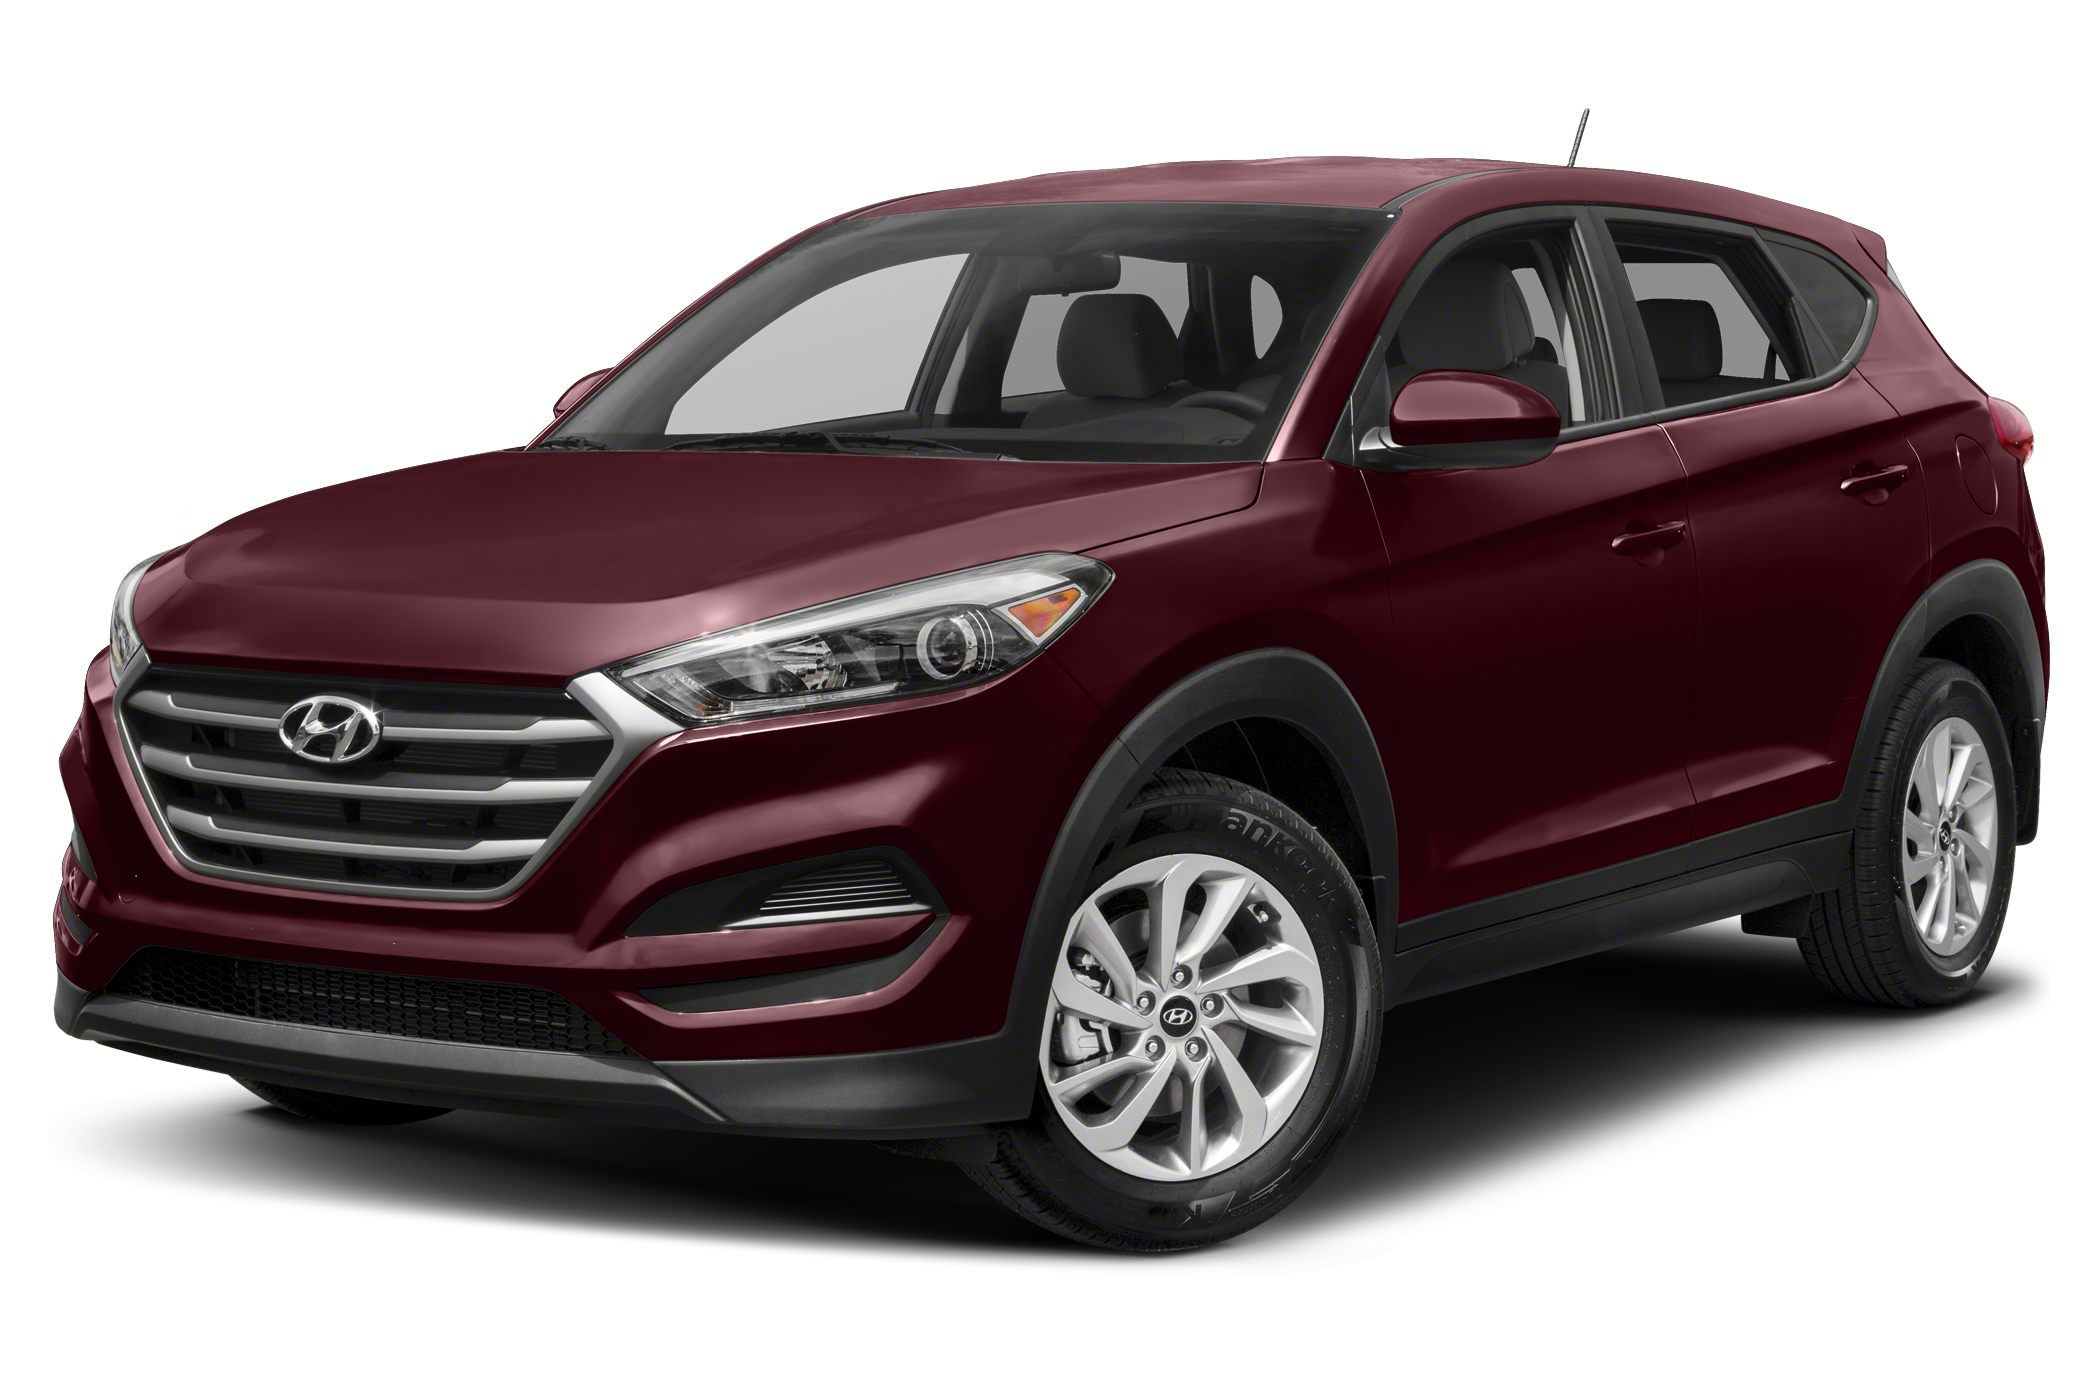 Hyundai Canada Incentives for the new 2019 Tucson SUV Crossover and Tucson Fuel Cell Electric Vehicle in Milton, Toronto, and the GTA